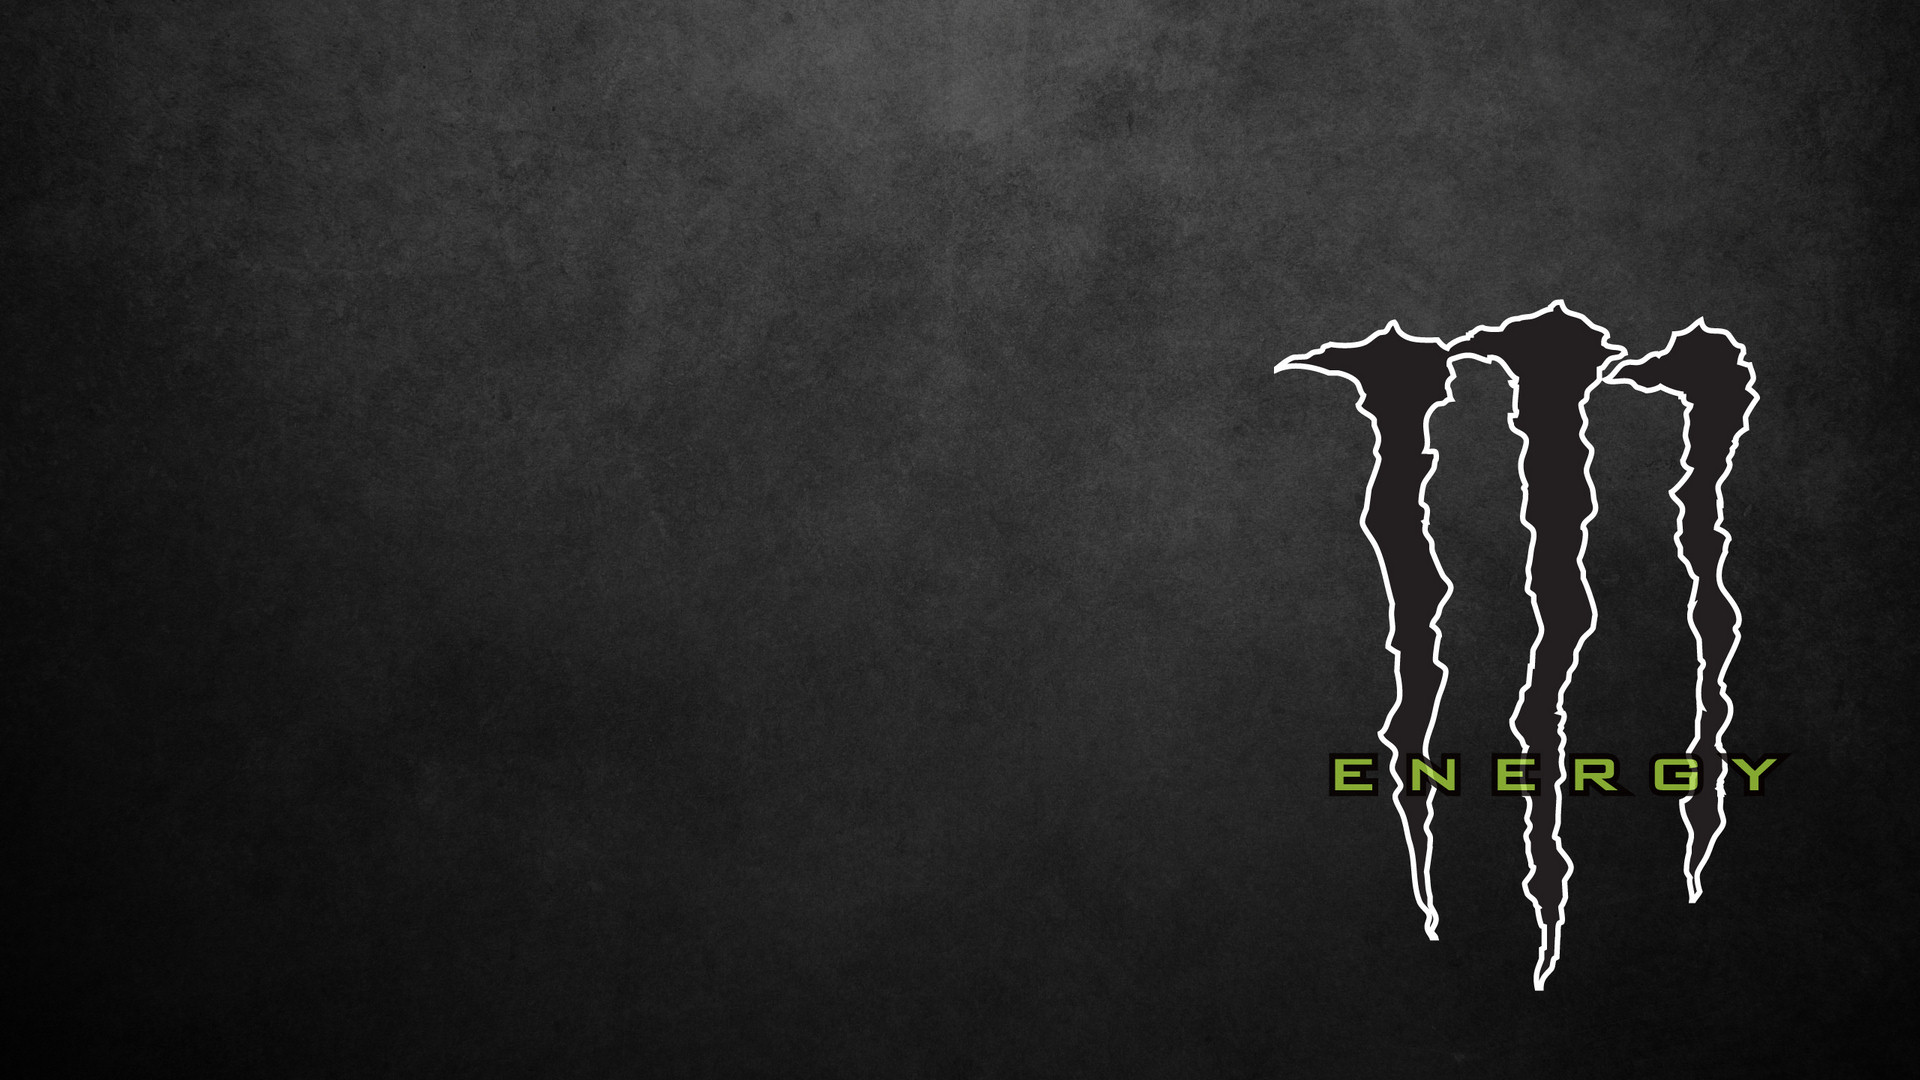 Monster Energy Desktop wallpaper 209769 1920x1080